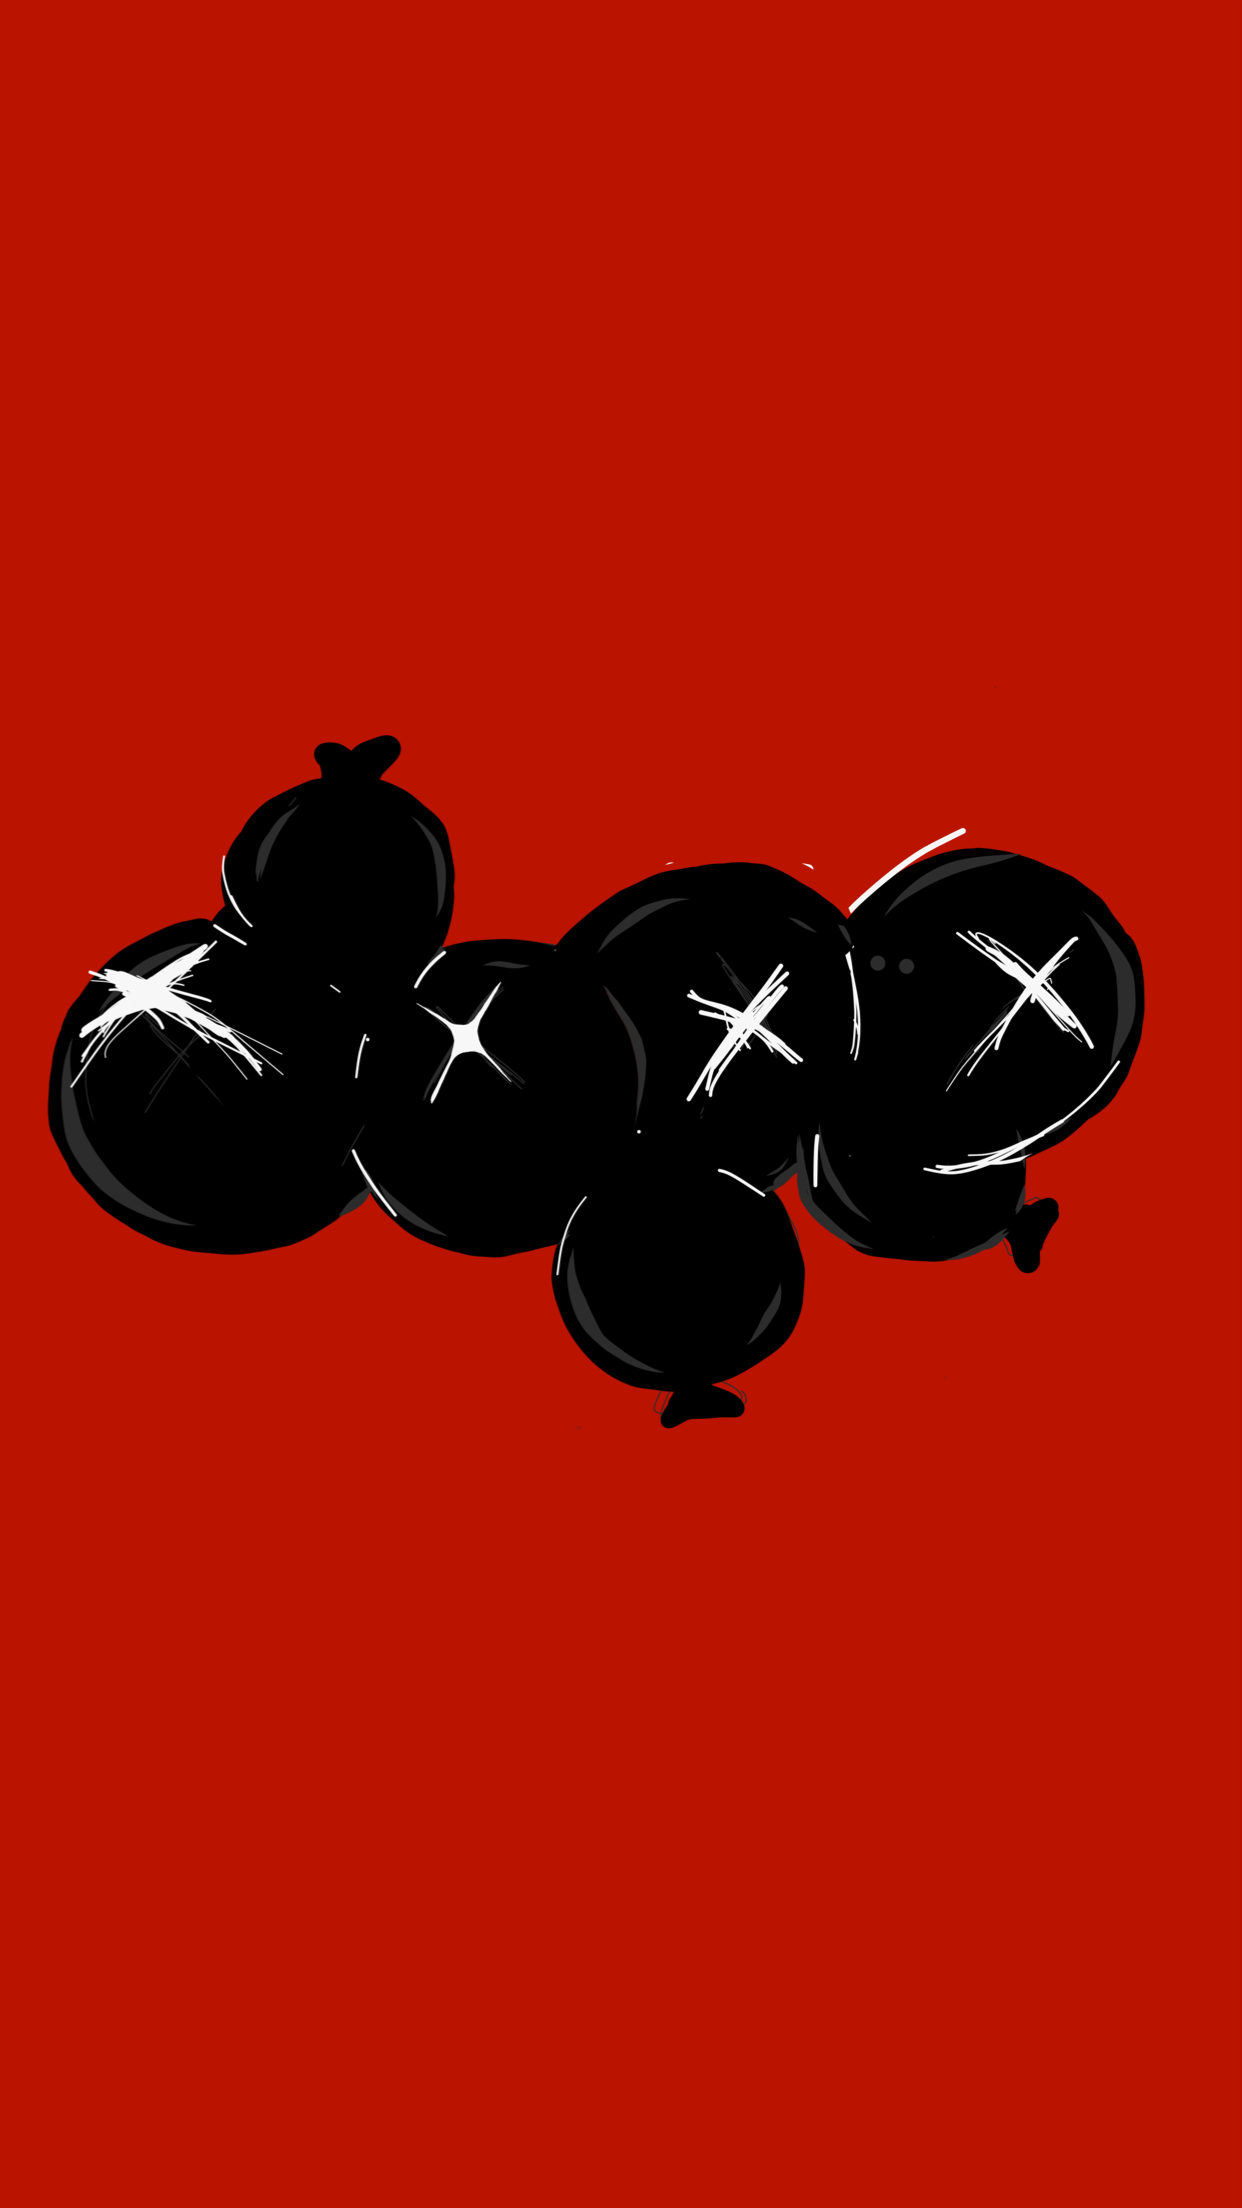 Dope-Black-Balloon.png